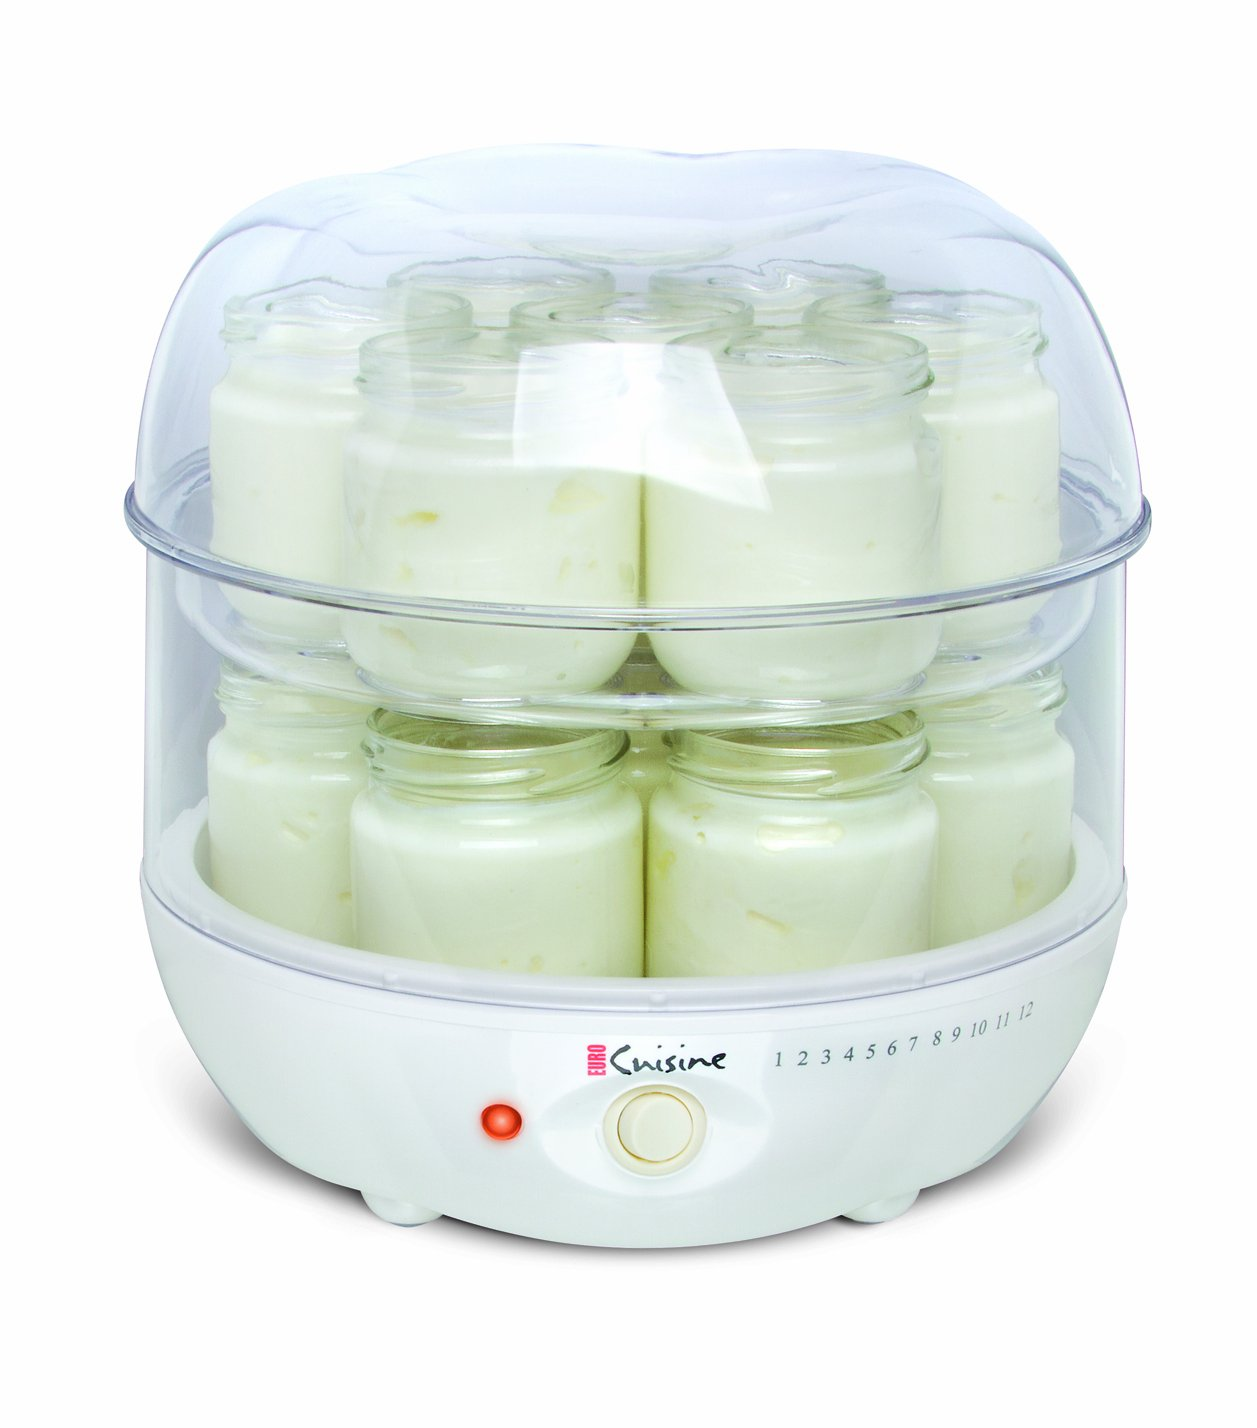 Euro cuisine gy4 top tier of yogurt maker new free for Cuisine generator